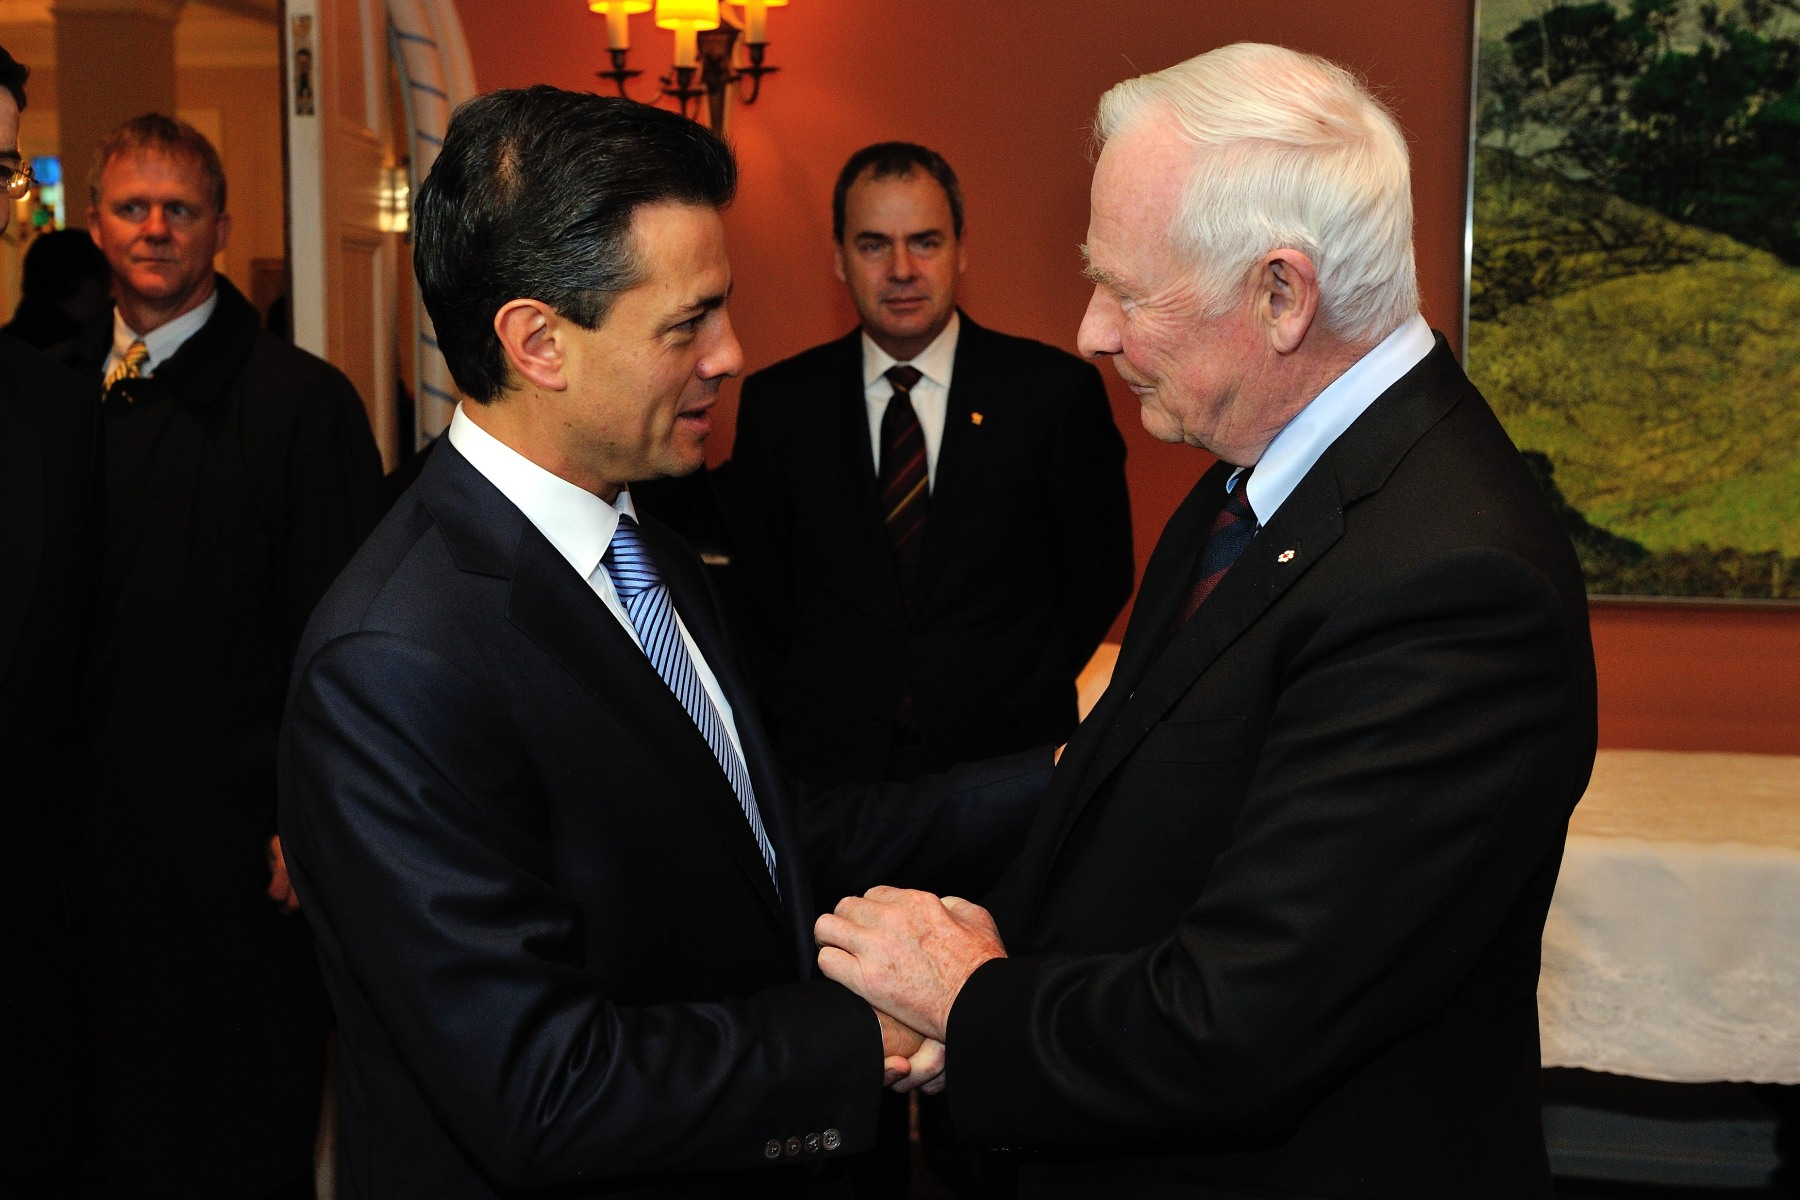 On the eve of his departure for a visit to Mexico, the Governor General met with Mr. Enrique Peña Nieto, President-elect of the United Mexican States.